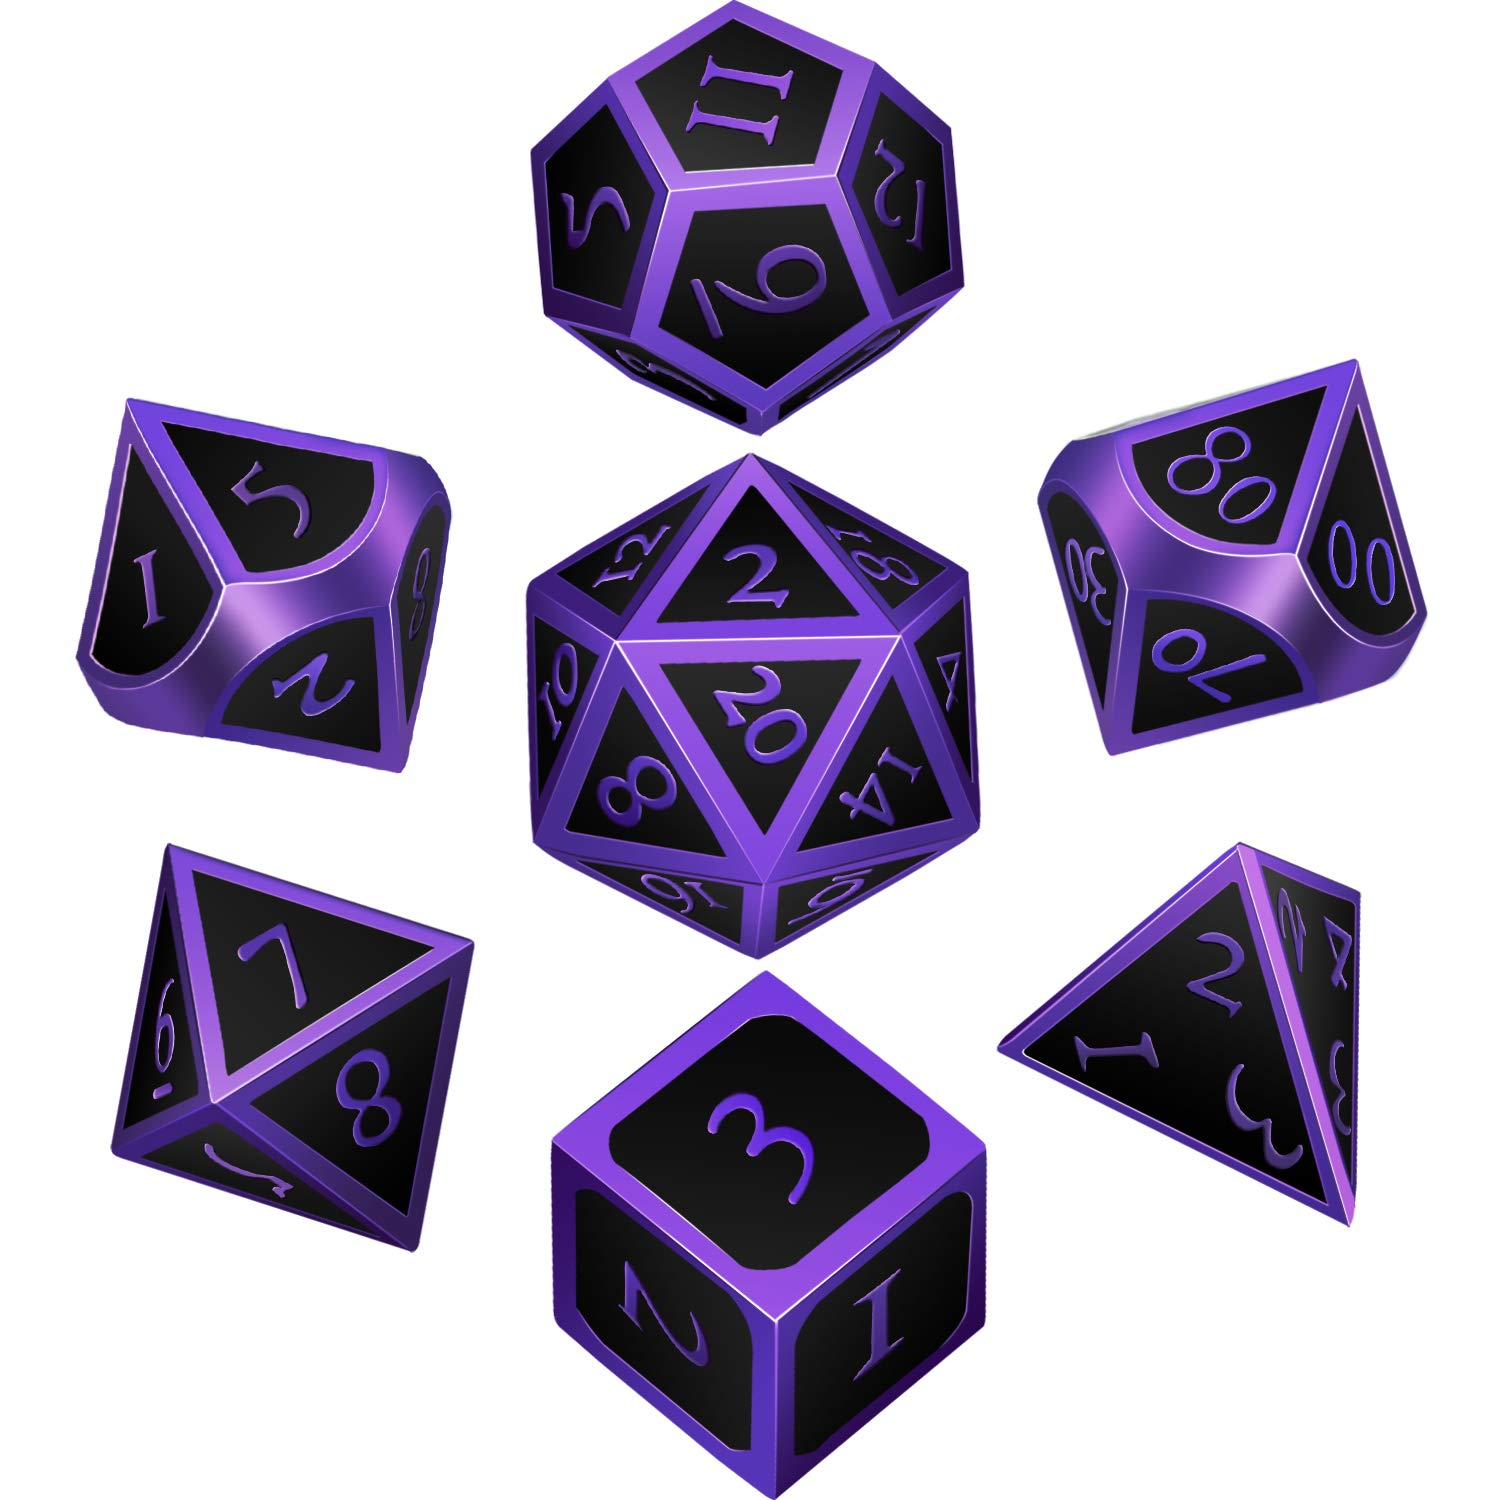 7 Pieces Metal Dices Set DND Game Polyhedral Solid Metal D&D Dice Set with Storage Bag and Zinc Alloy with Enamel for Role Playing Game Dungeons and Dragons, Math Teaching (Purple Edge Black) by Unknown